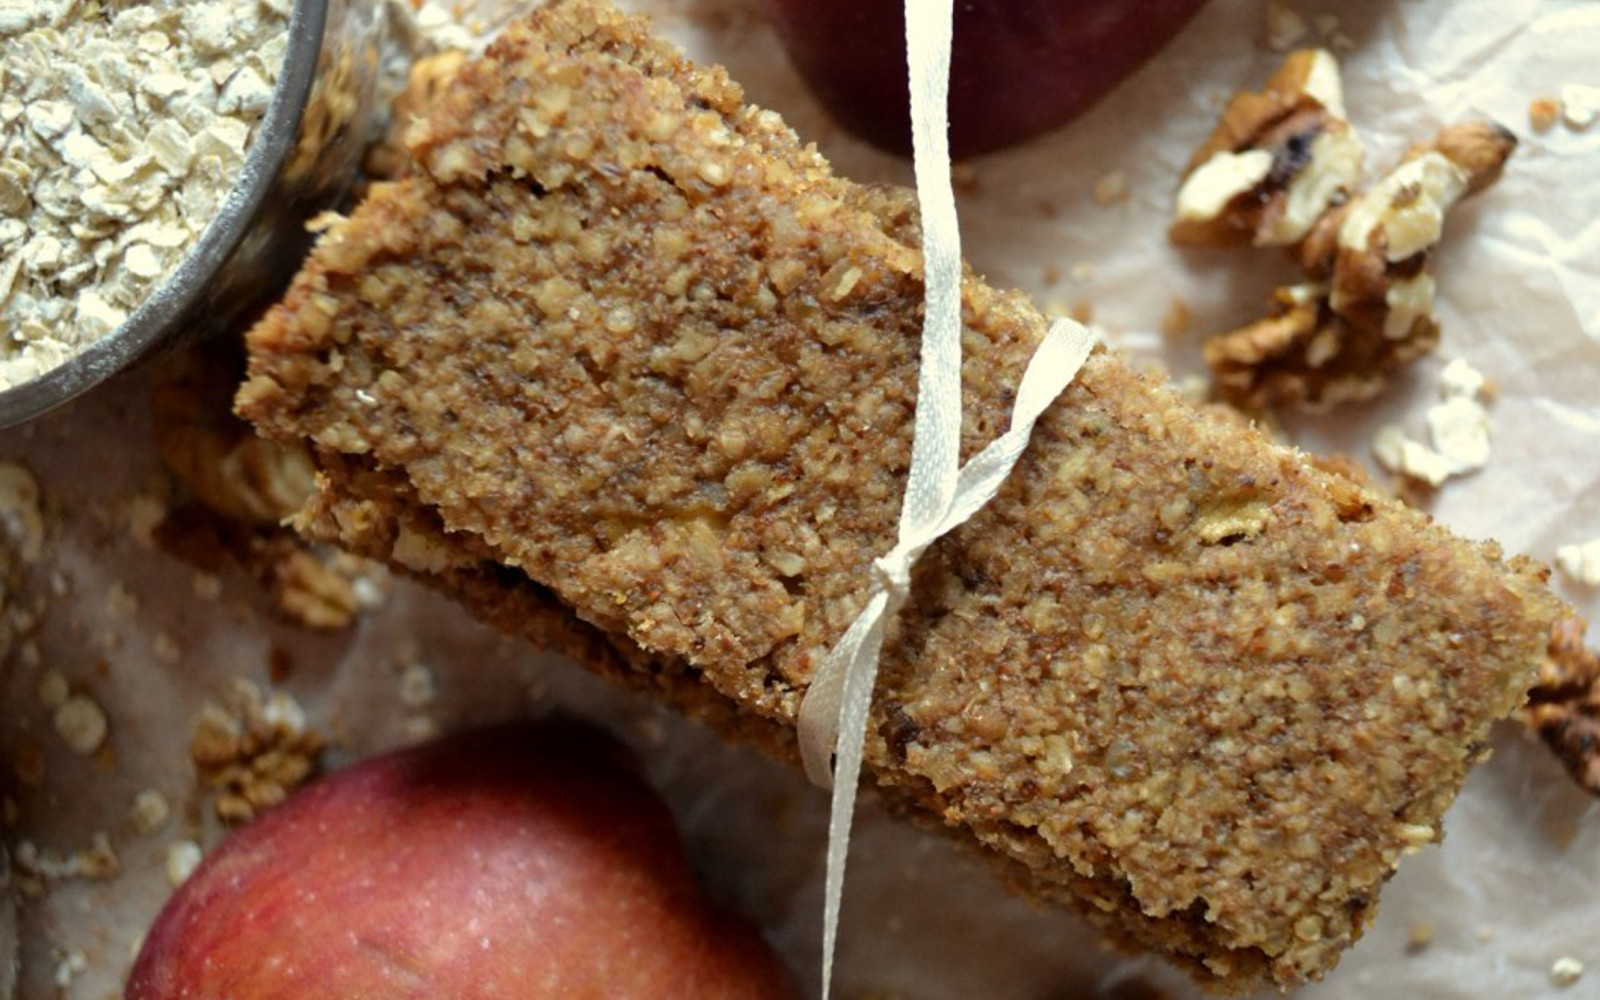 Vegan Gluten-Free Apple Walnut Bars with oats